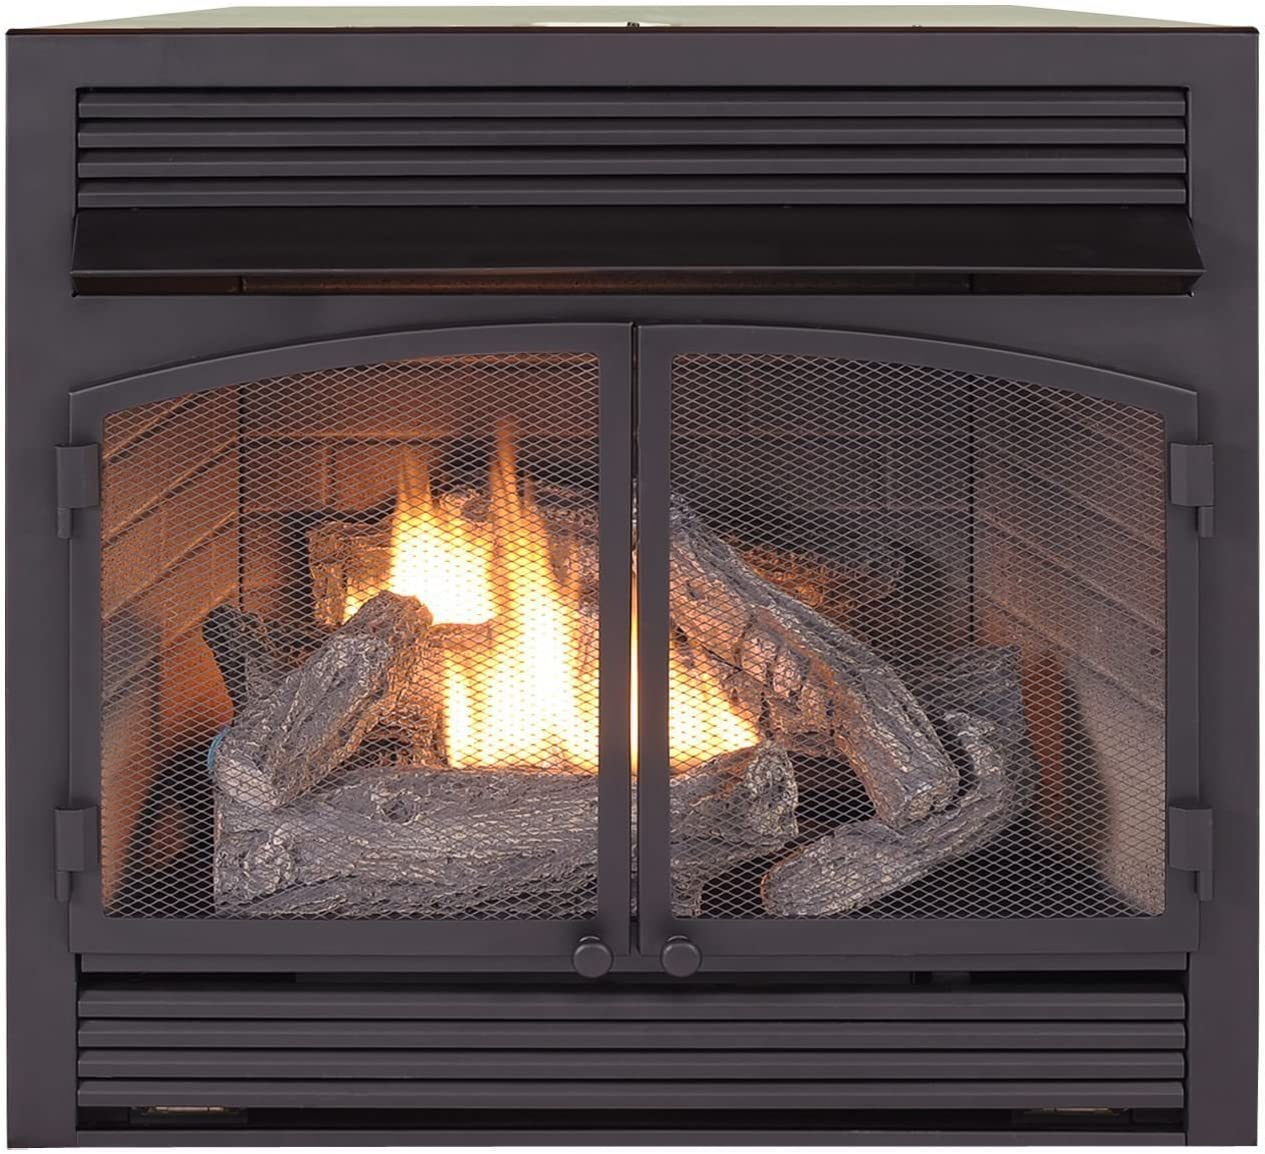 Duluth Forge Dual Fuel Ventless Insert-32 OFFicial 000 Max 73% OFF Rem BTU Fireplace